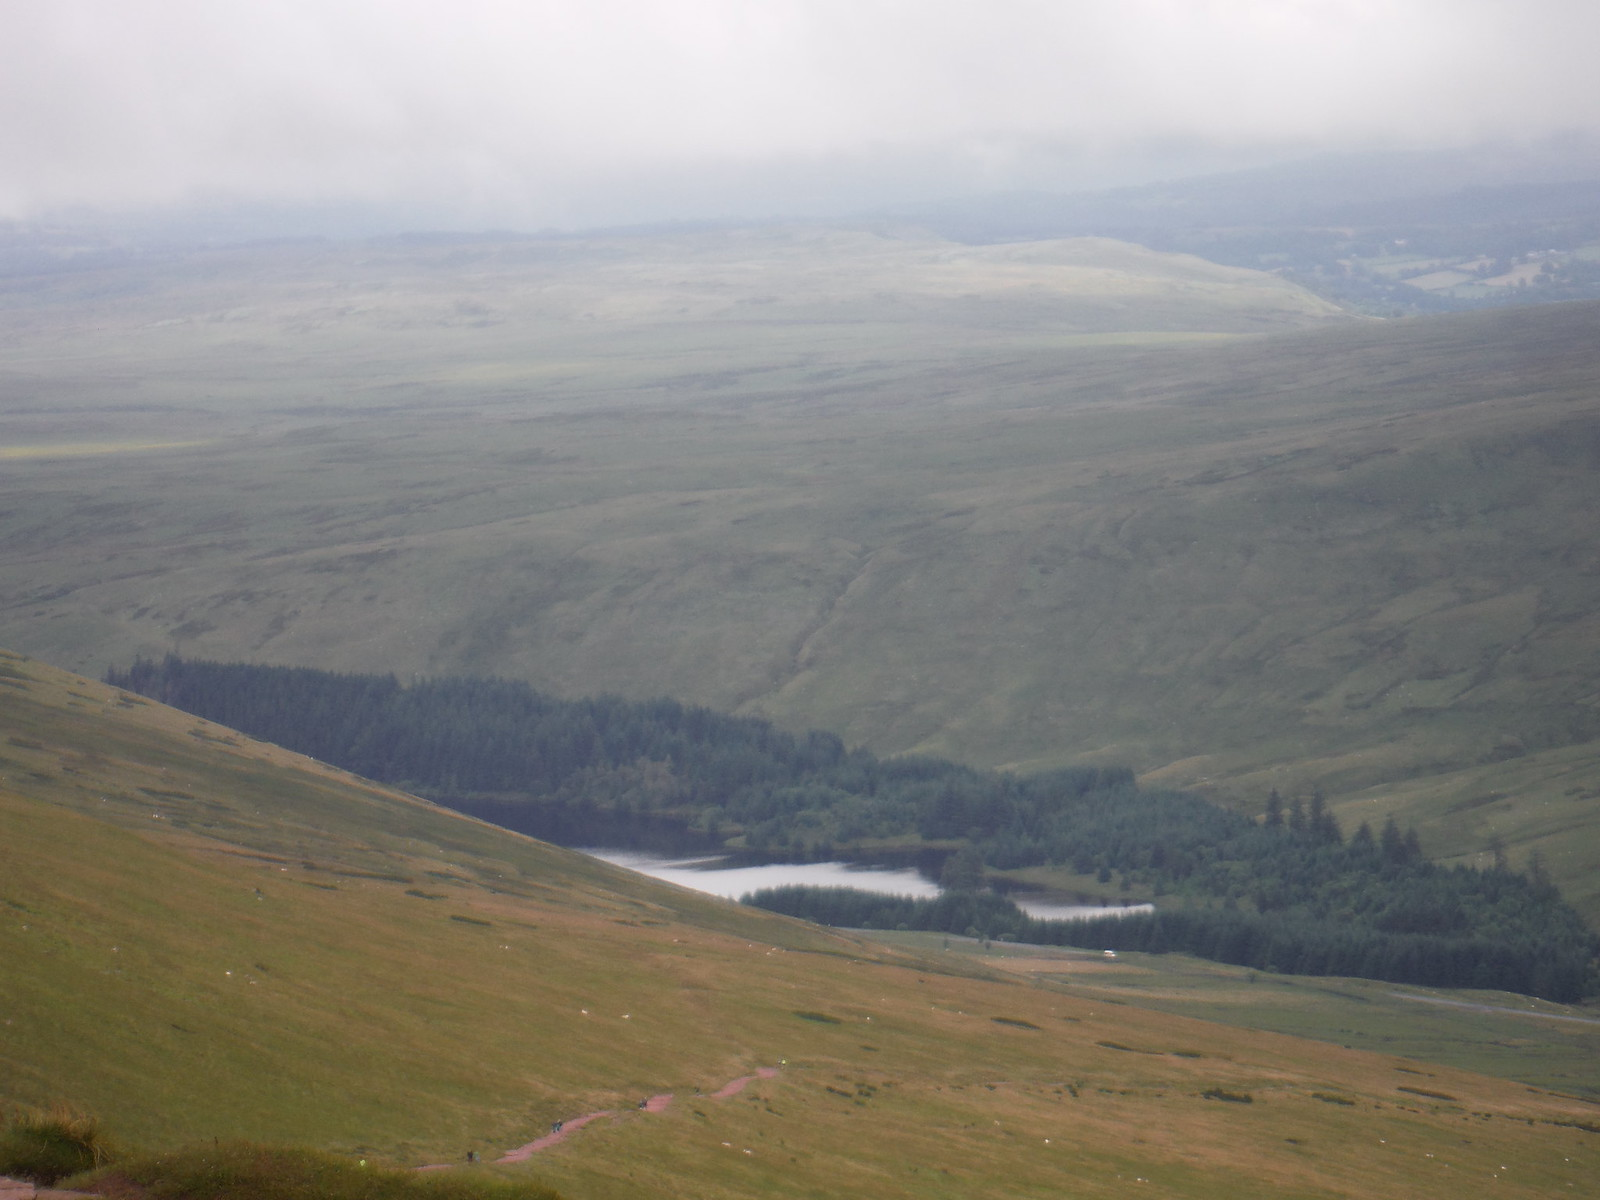 Beacons Reservoir and Ascent from A470 Car Park, taken from Corn Du SWC Walk 278 Breacon Beacons Horseshoe - Bannau Brycheiniog (Ascent from Storey Arms Car Park)